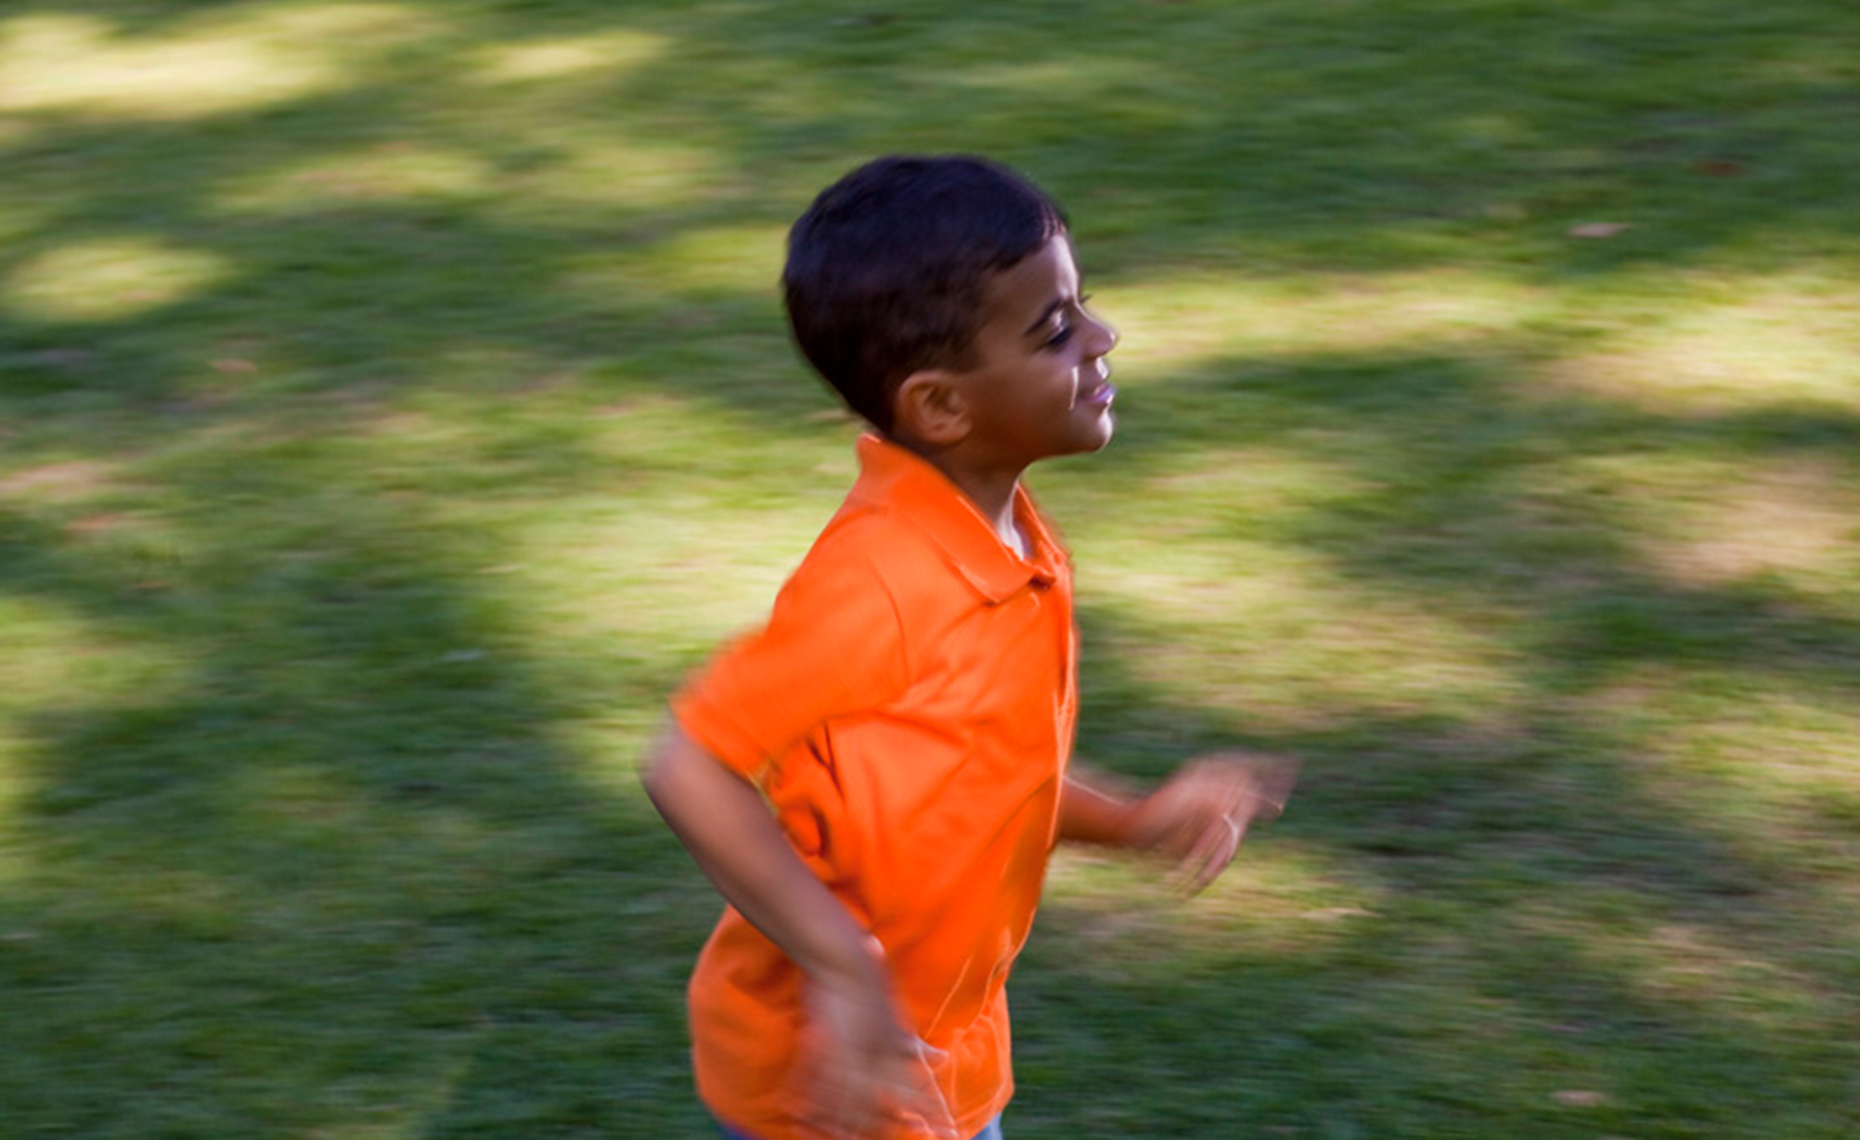 Young-boy-running-4995